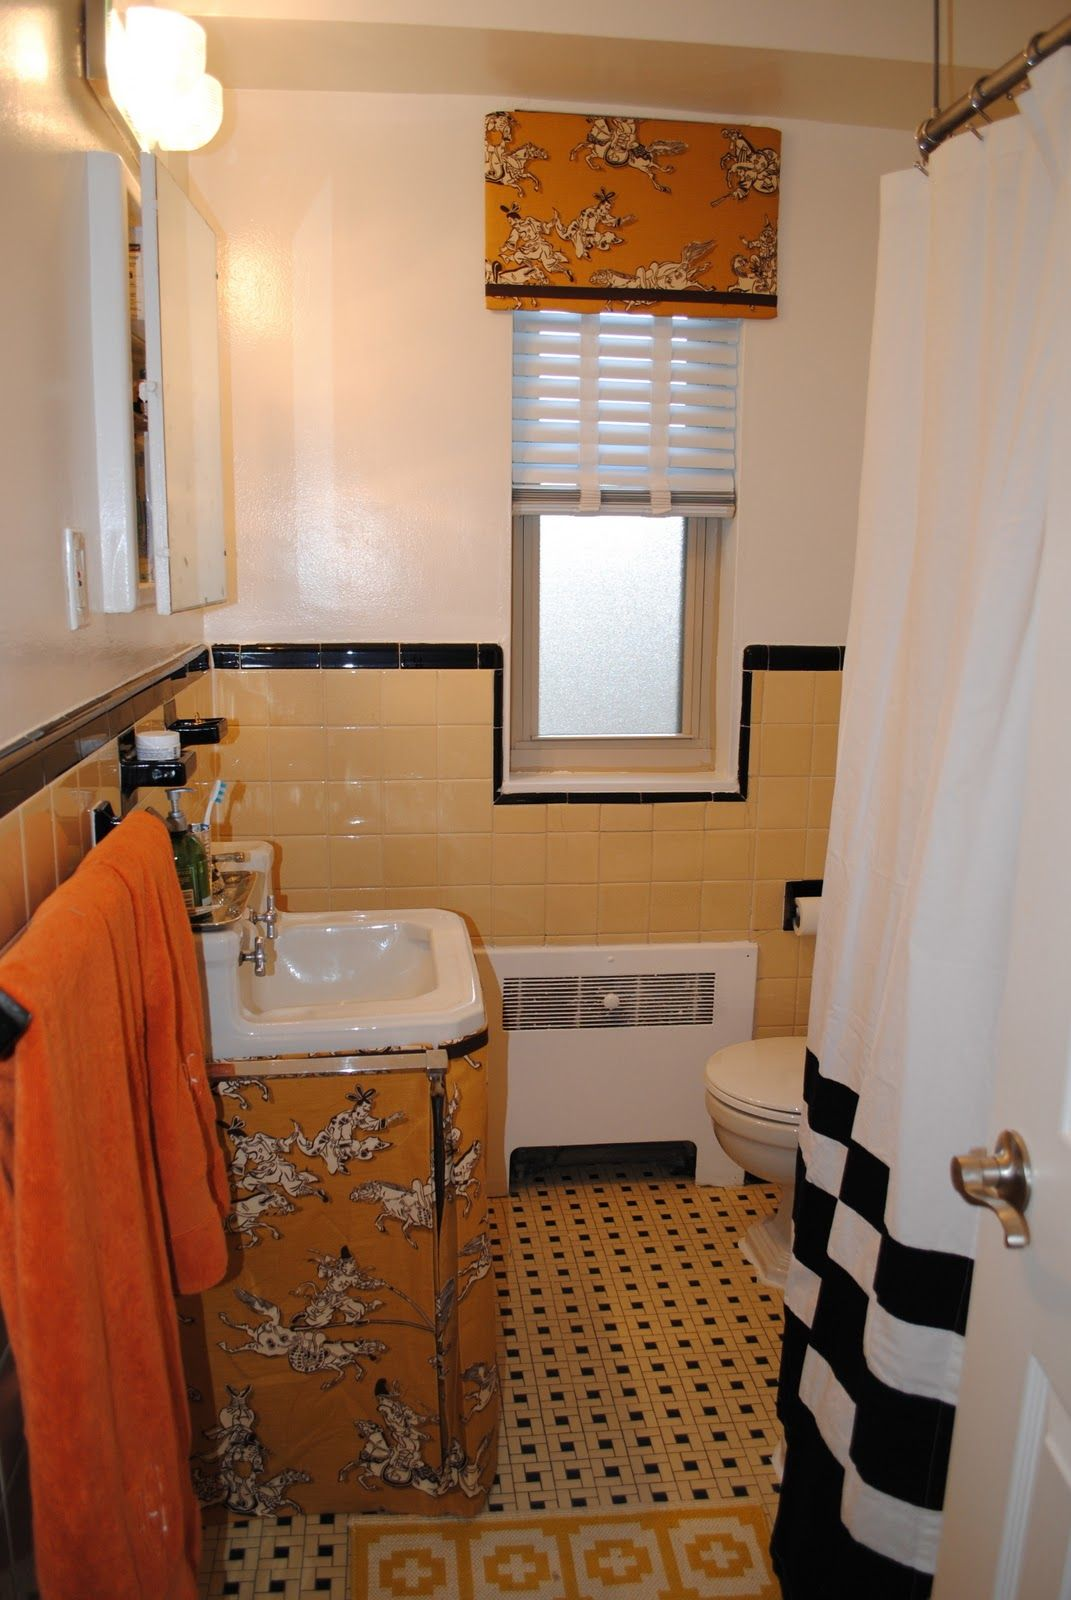 Skirt On A Sink In A Pretty Yellow And Black Tiled Bathroom